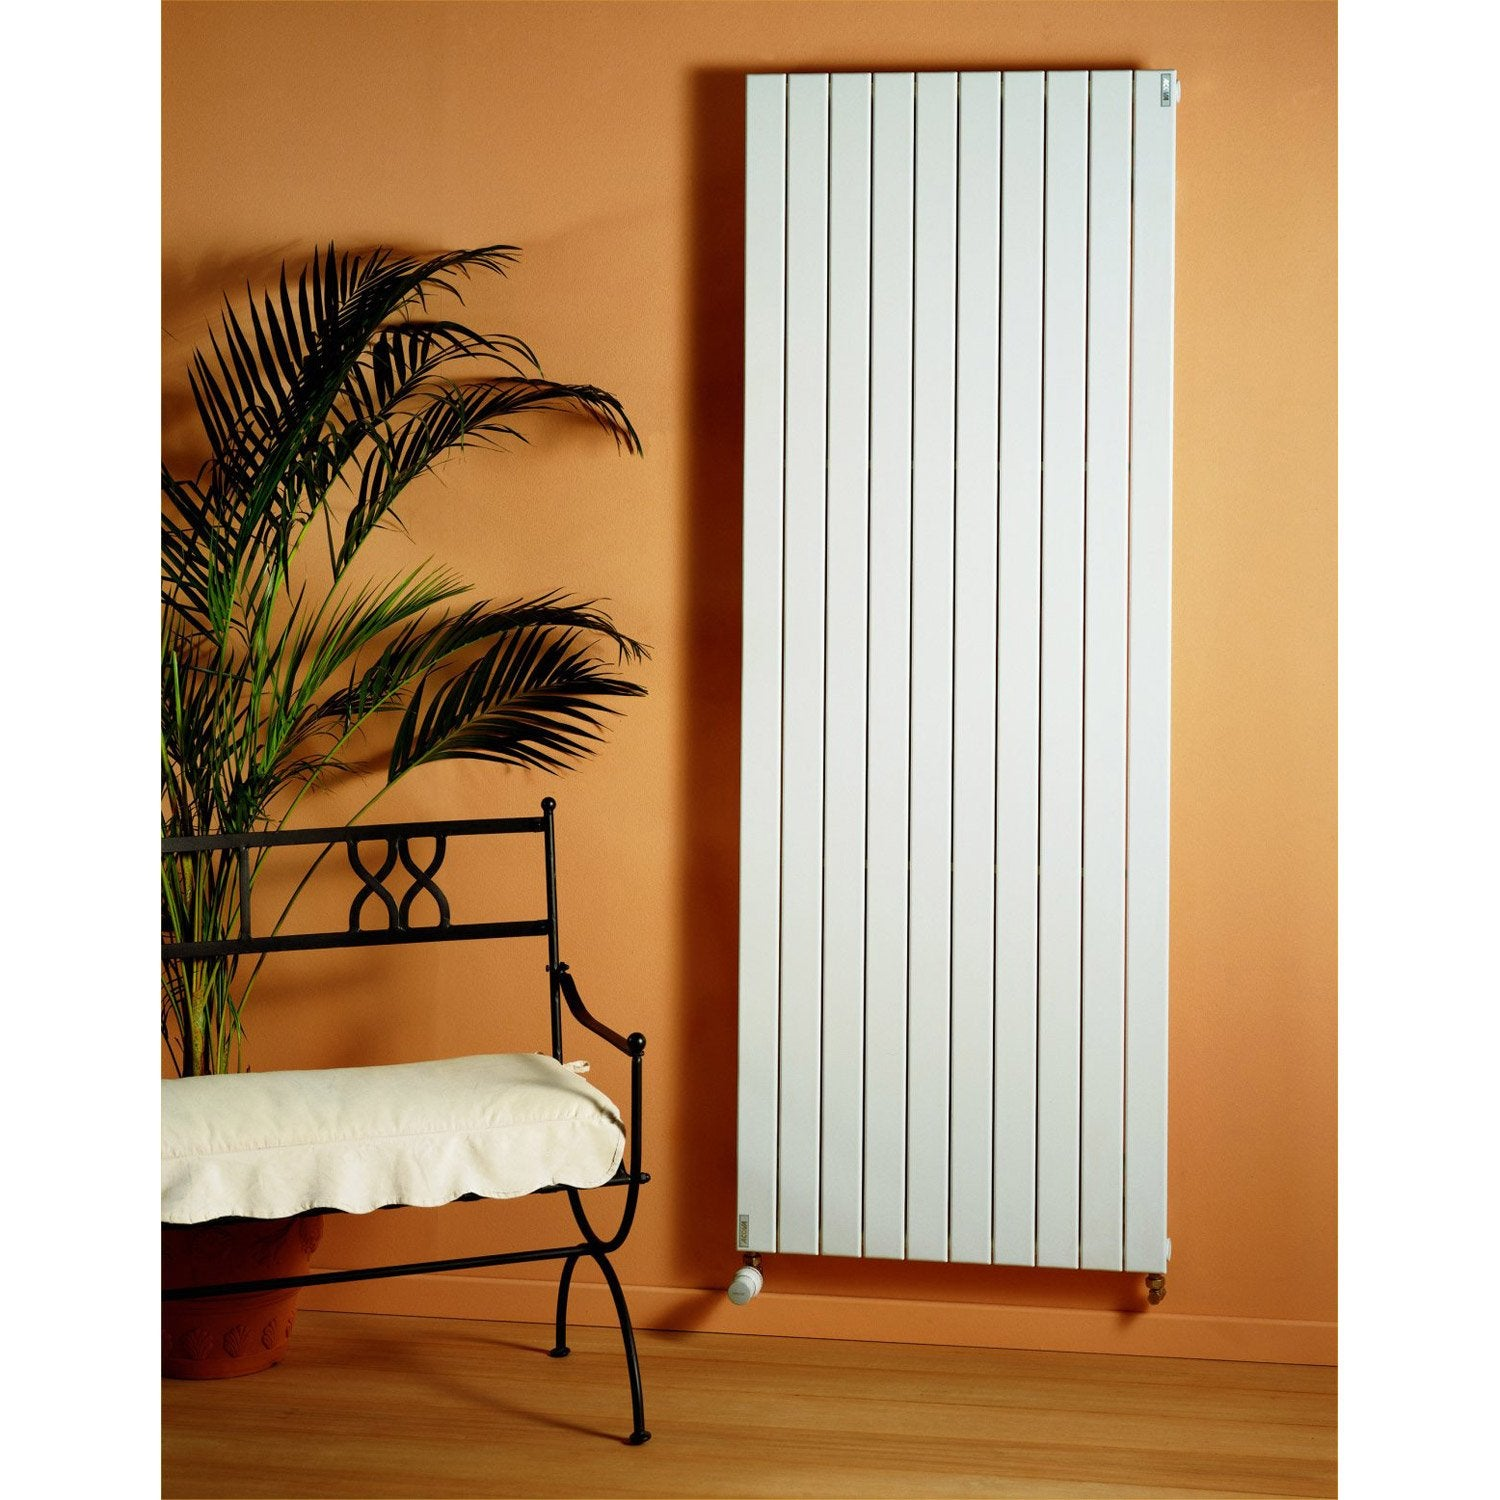 Ordinaire Radiateur Chauffage Central Vertical Design #13: Radiateur Chauffage Central Lina Blanc, L.59.2 Cm, 1240 W | Leroy Merlin